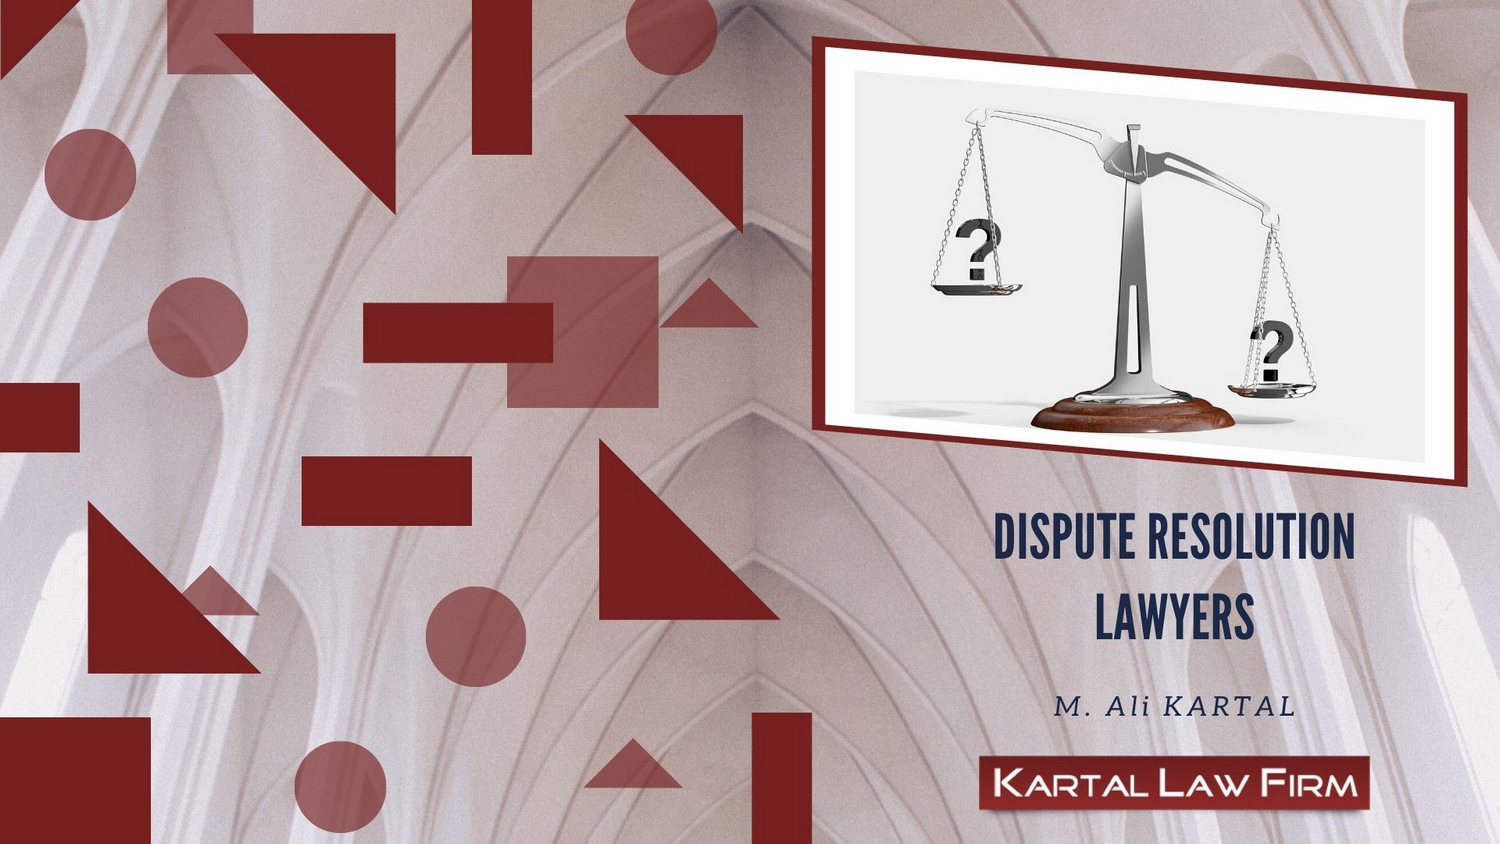 dispute resolution lawyers